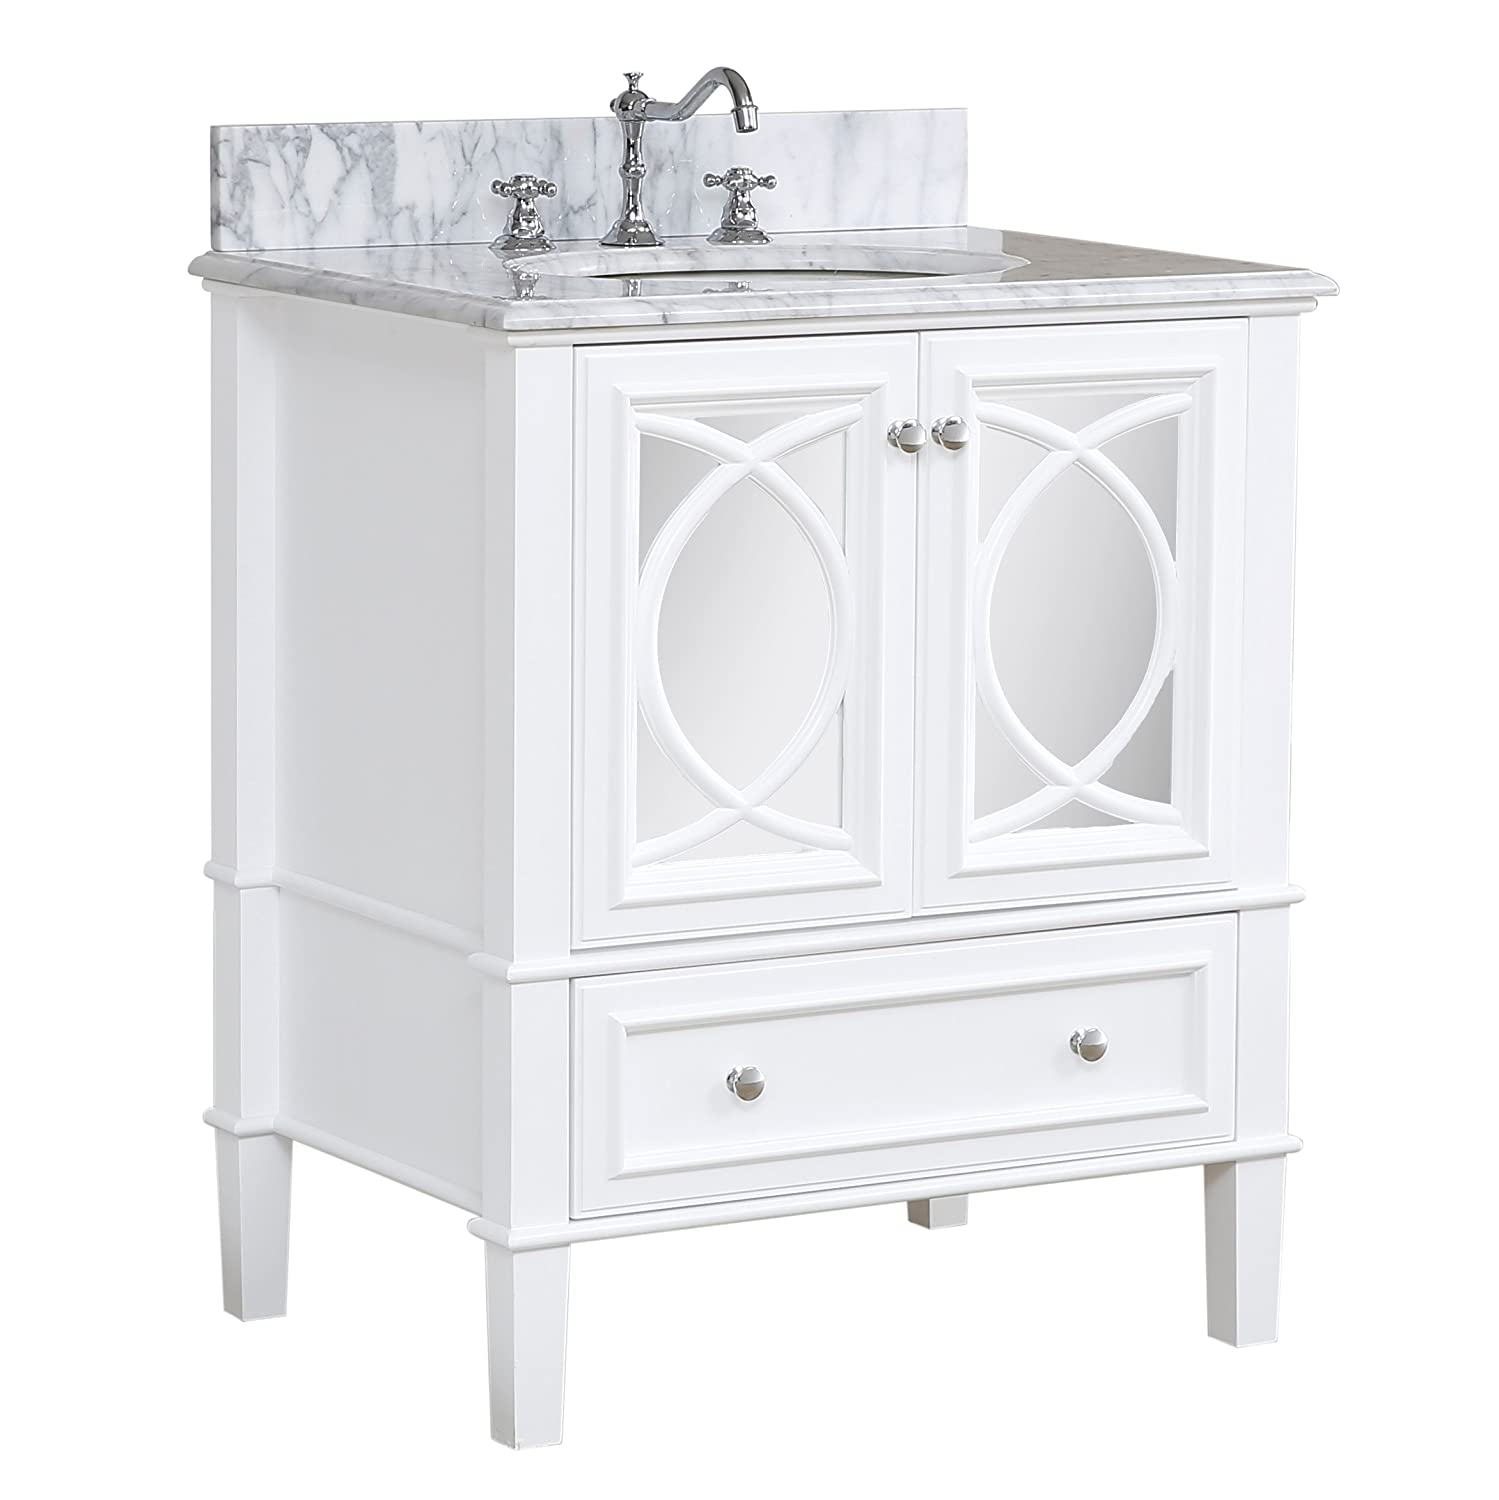 Great Olivia 30 Inch Bathroom Vanity (Carrara/White): Includes Italian Carrara  Countertop, A White Cabinet, Soft Close Drawers, And A Ceramic Sink      Amazon.com